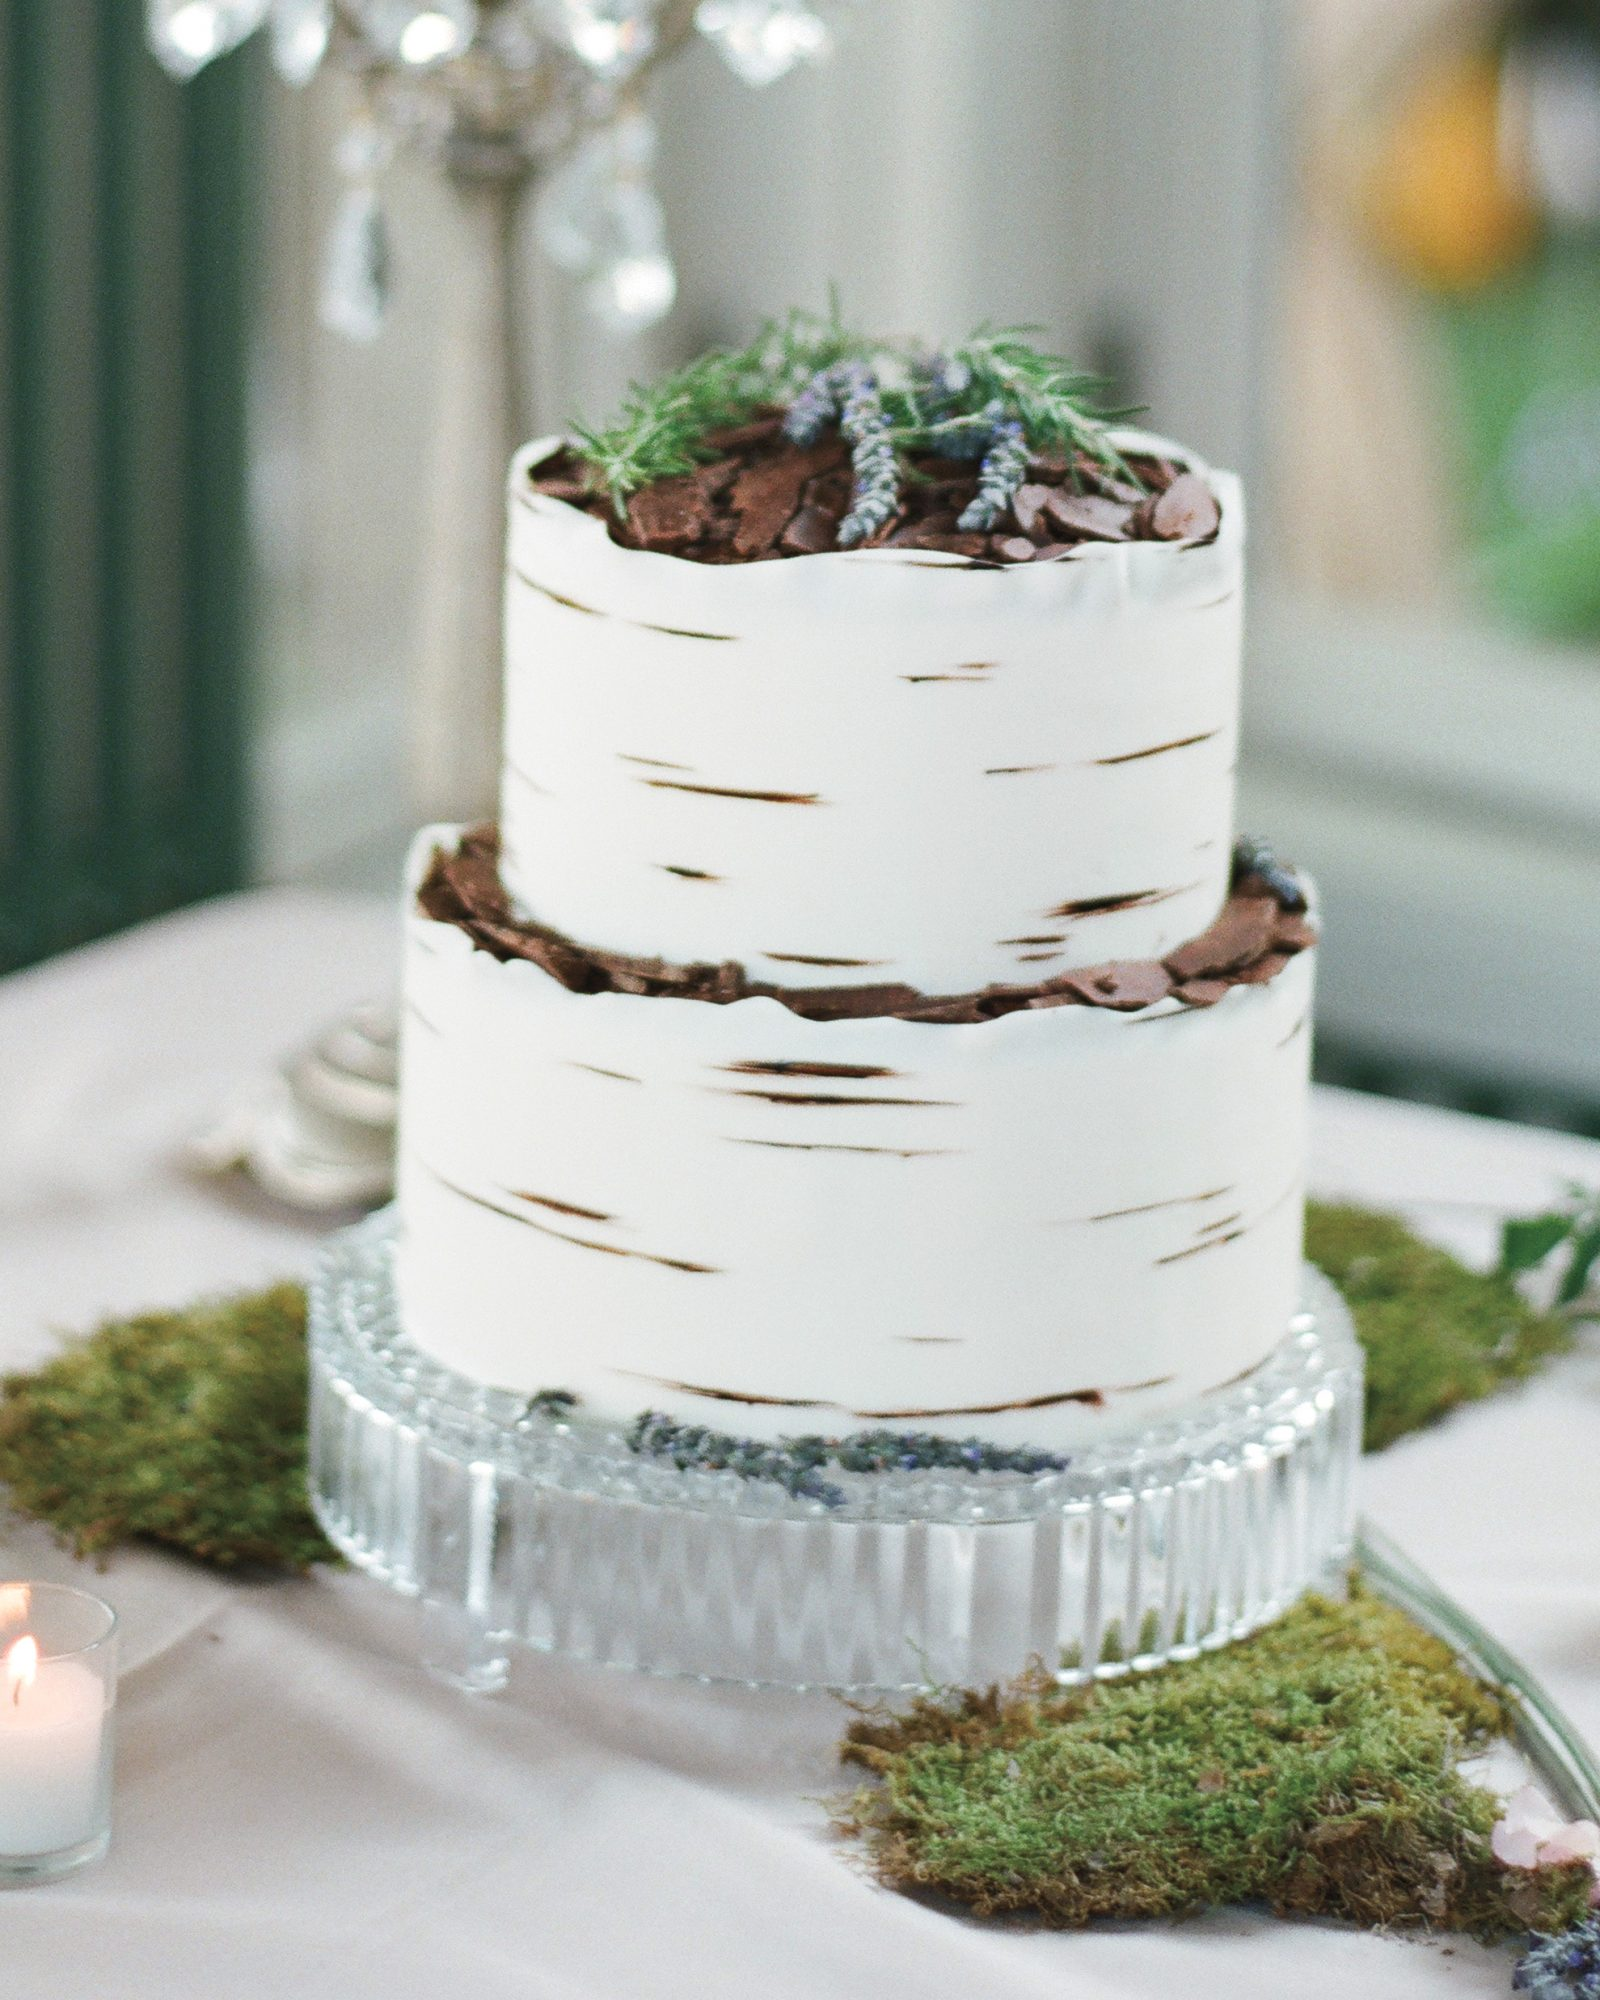 A Nature-Inspired Cake